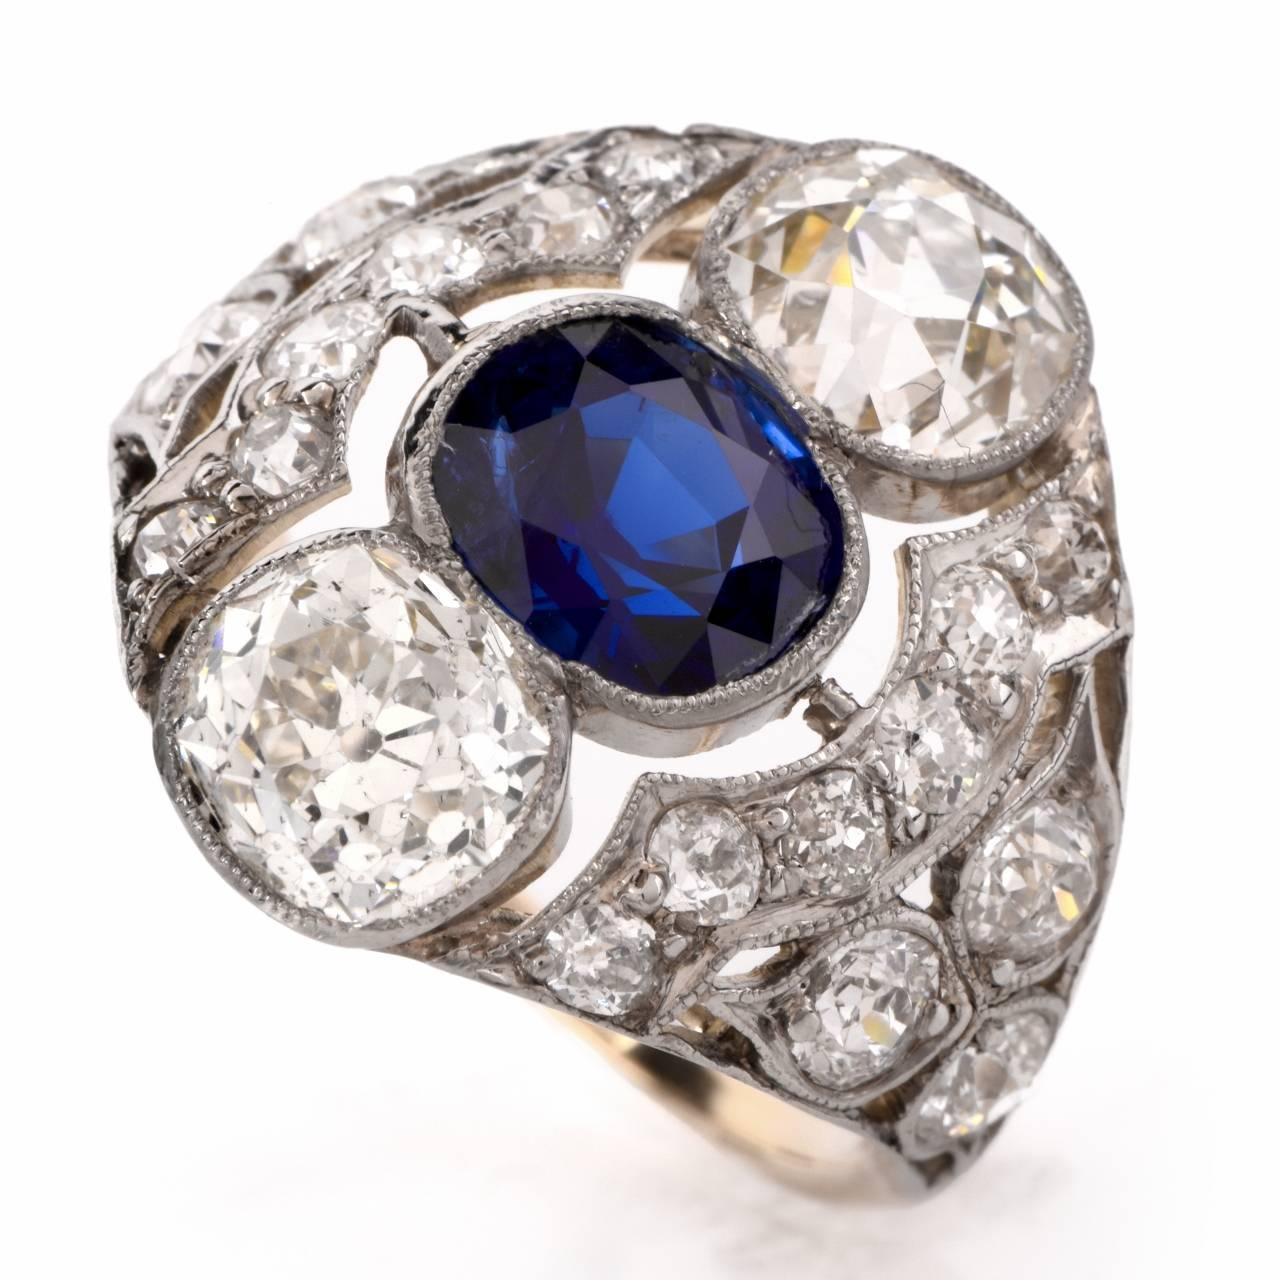 Antique Sapphire Diamond Platinum Engagement Ring For Sale at 1stdibs